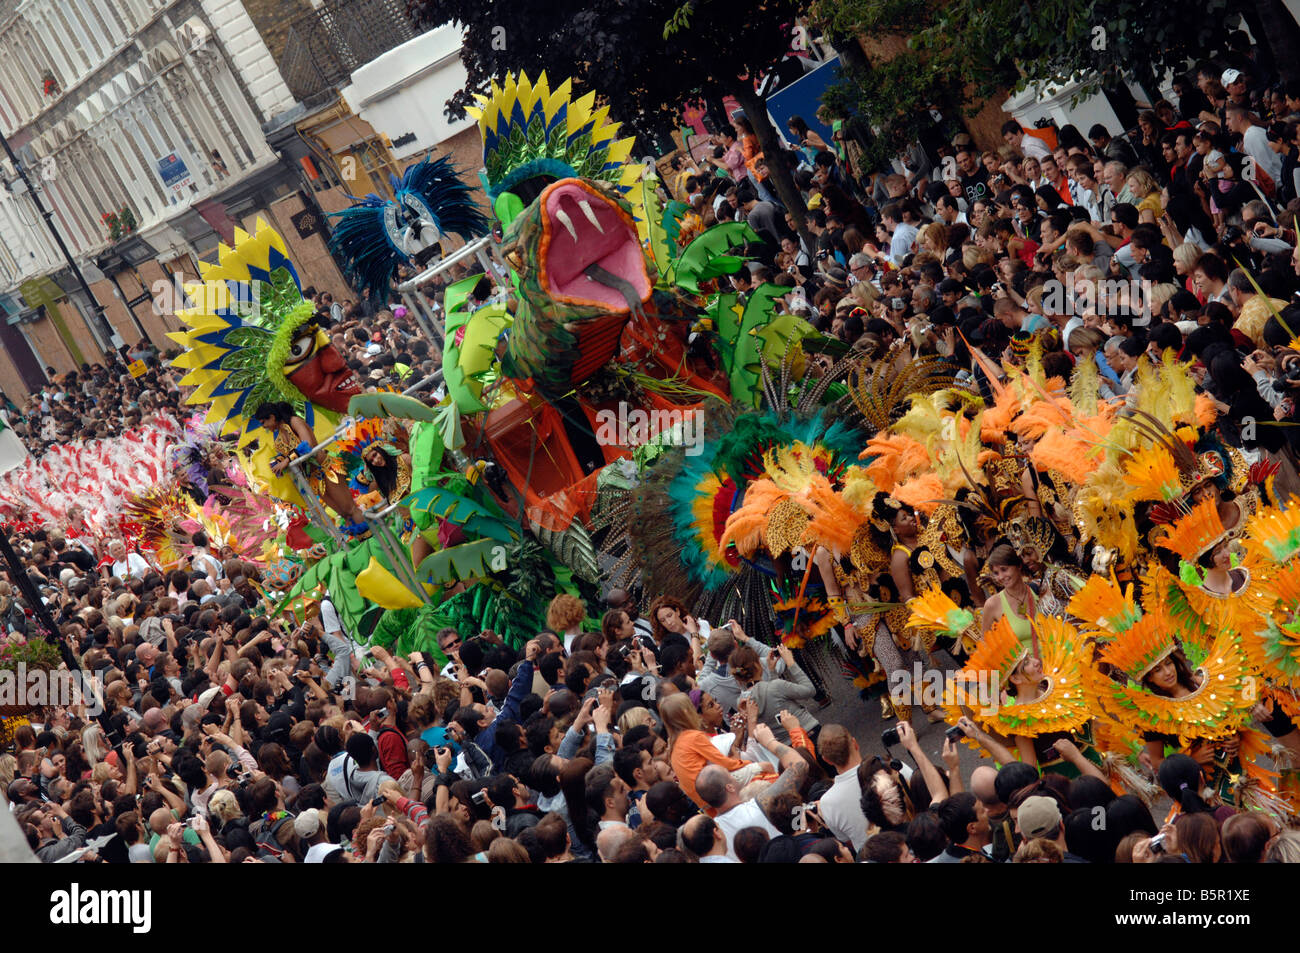 An elaborate float and procession makes its way through the crowds of revellers at 2008's Notting Hill Carnival - Stock Image